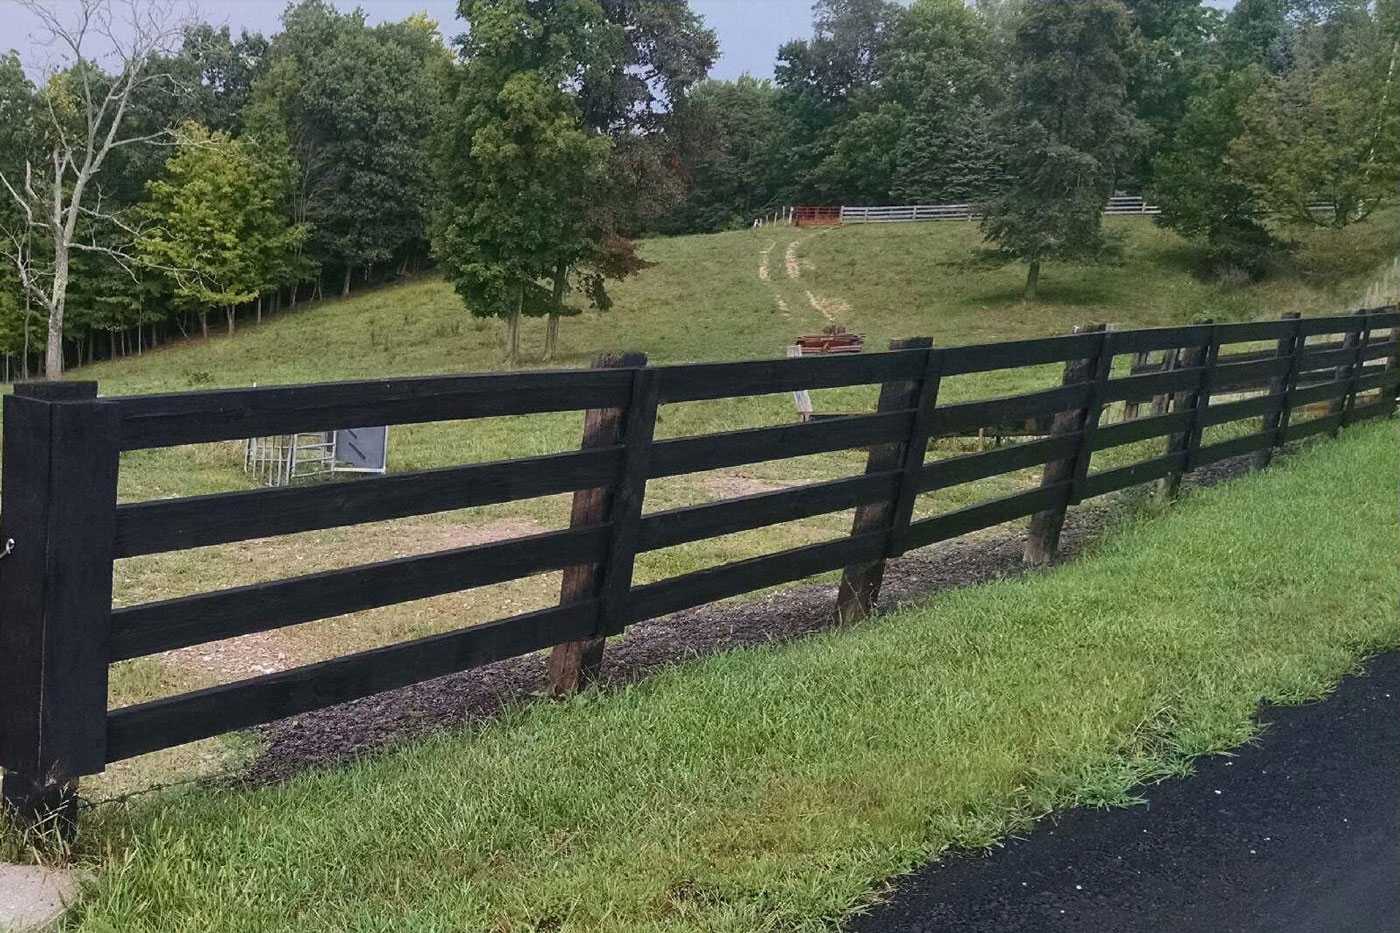 3 4 Board Farm Fence Pasture Horse Cattle Livestock show arenas containment strauss fence